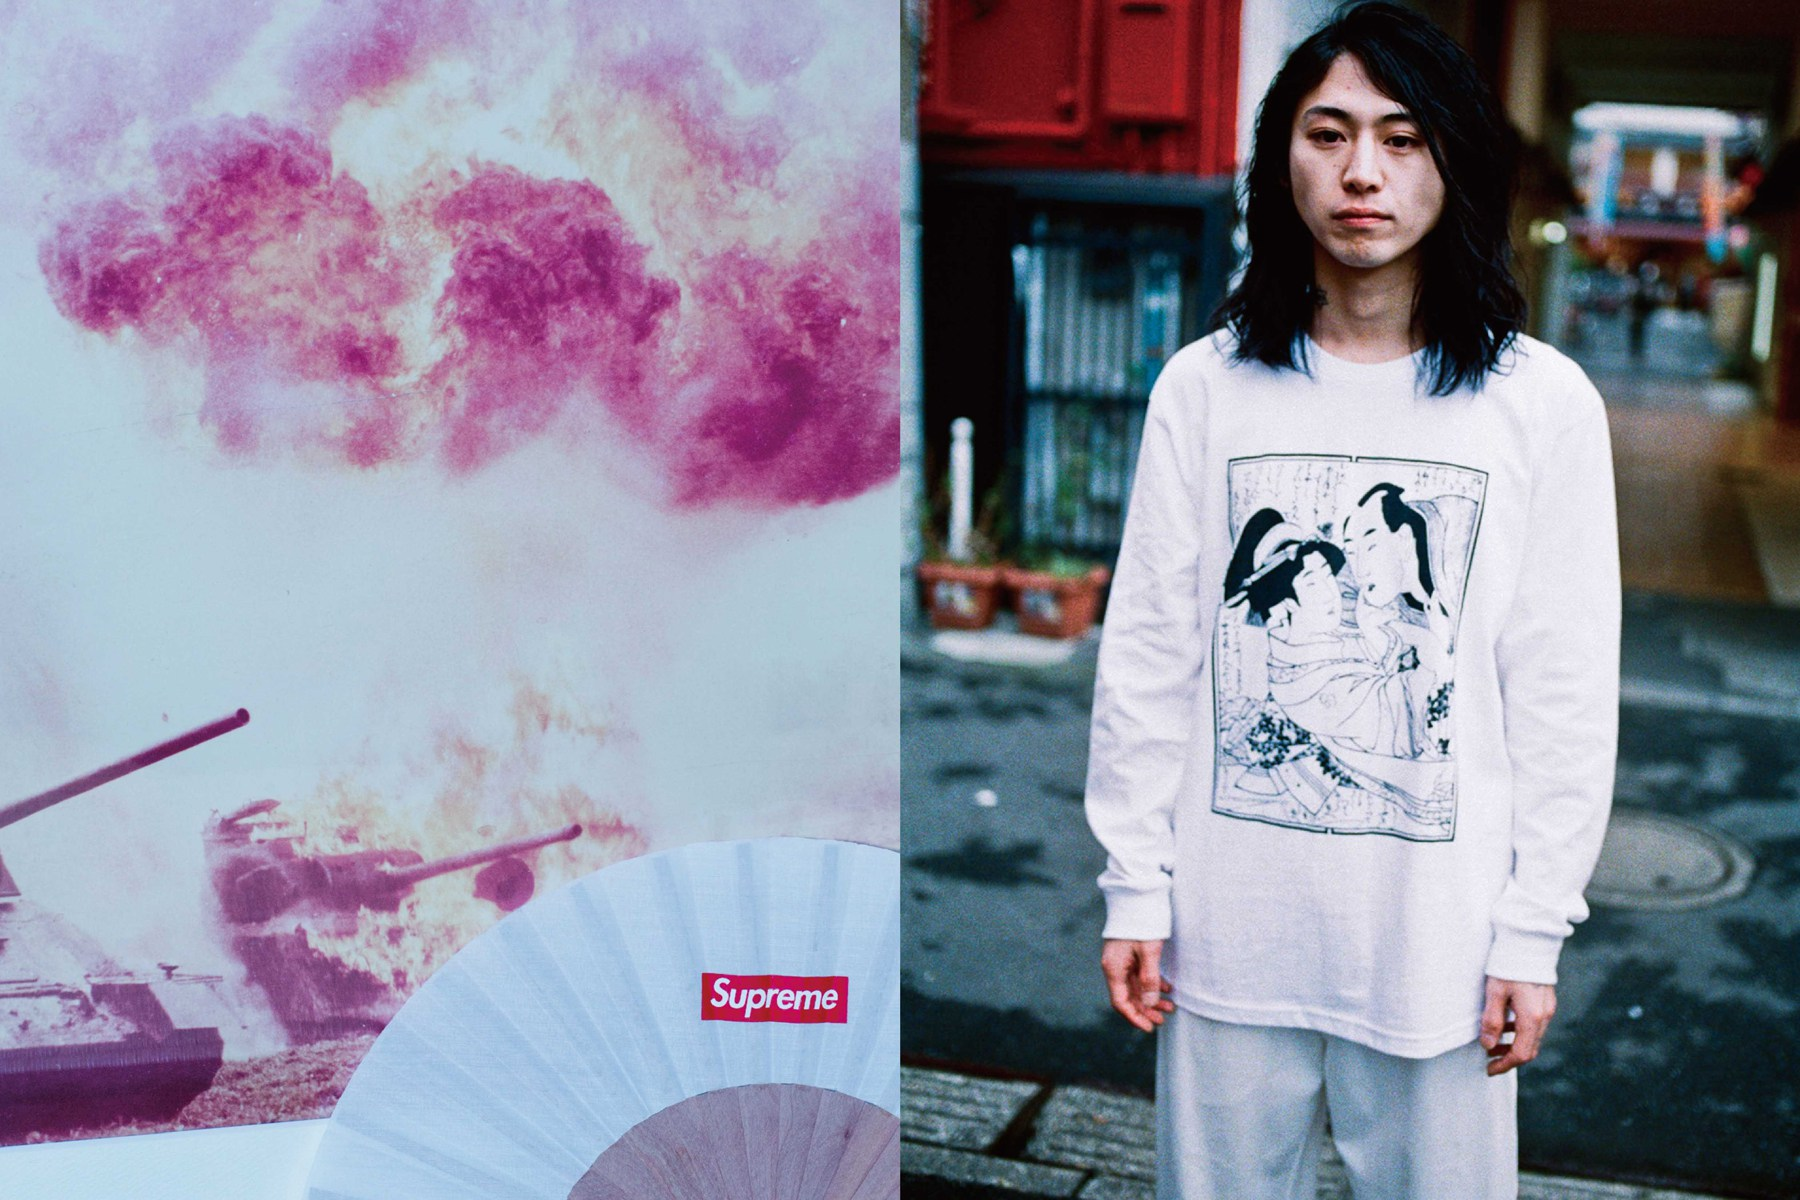 supreme-x-sasquatchfabrix-2016-spring-summer-collection-3